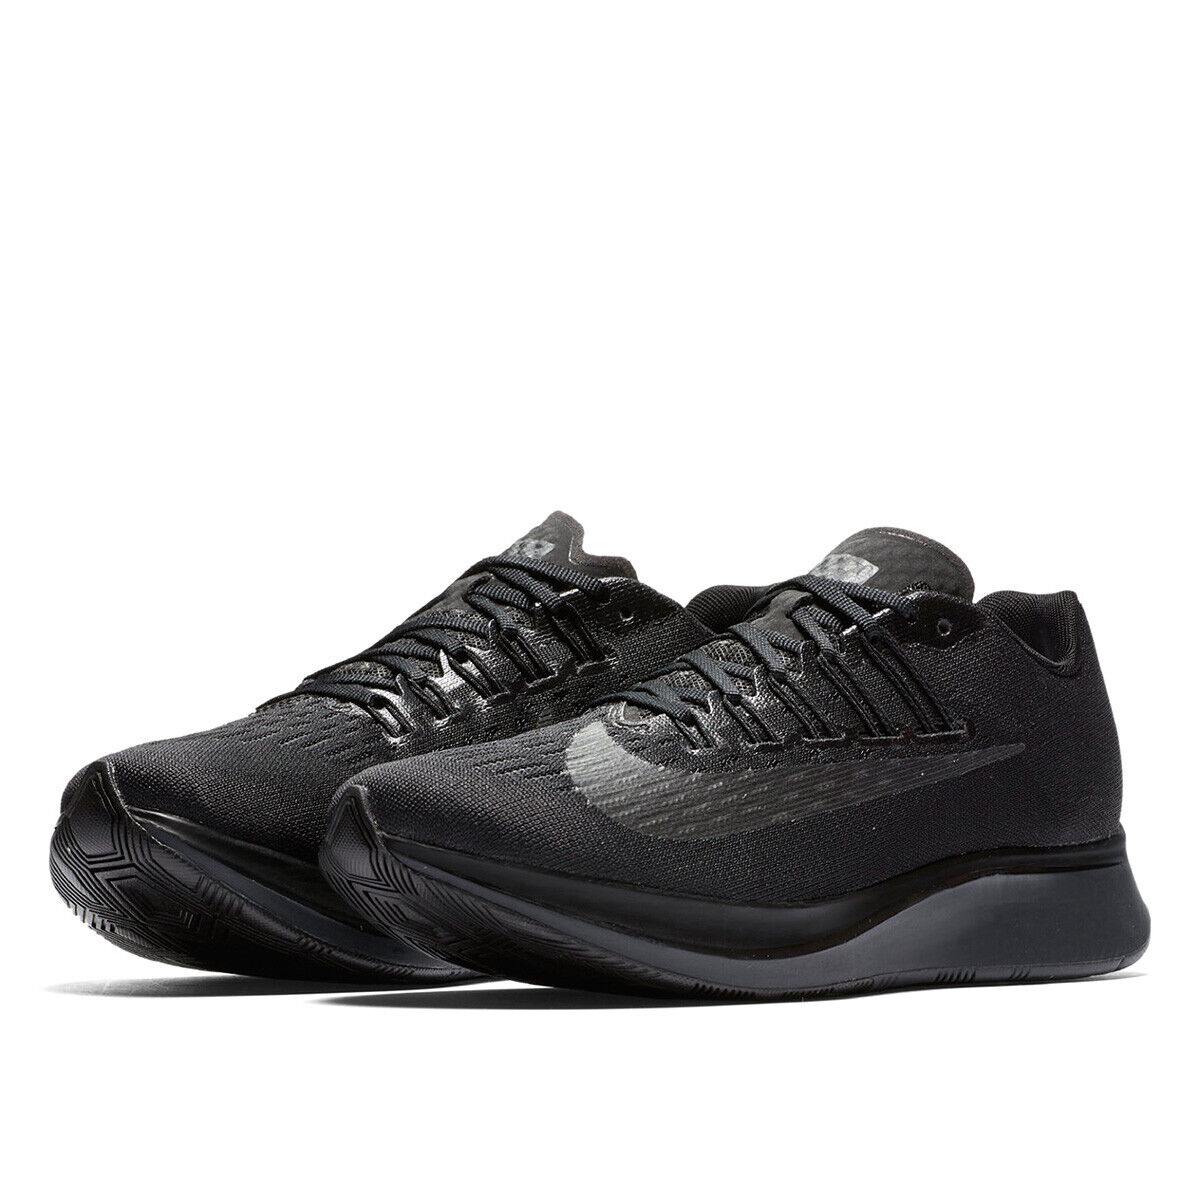 Nike Zoom Fly Running Shoes Black 897821-003 Women's Size 8,